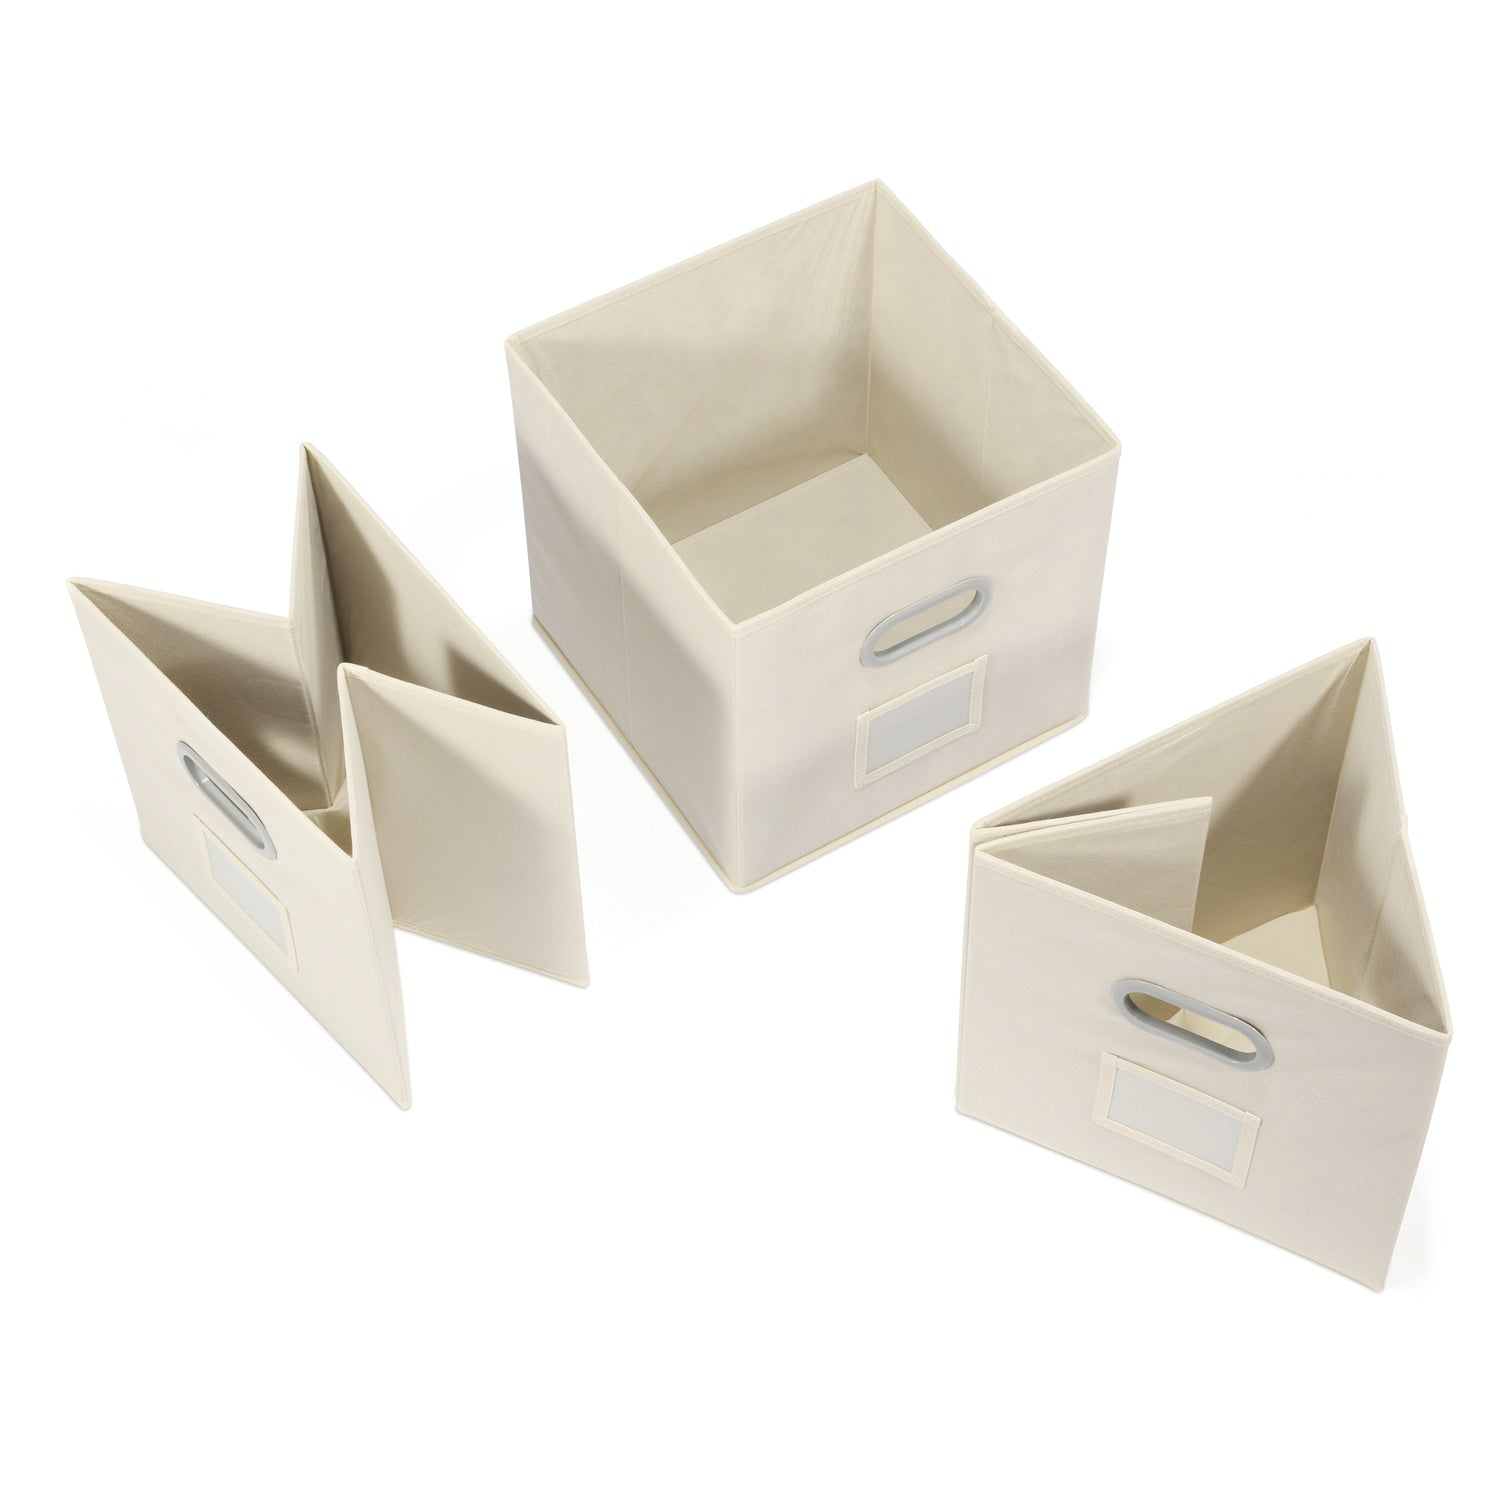 ... Magicfly Foldable Storage Bins With Label Holders, Beige   Magicfly ...